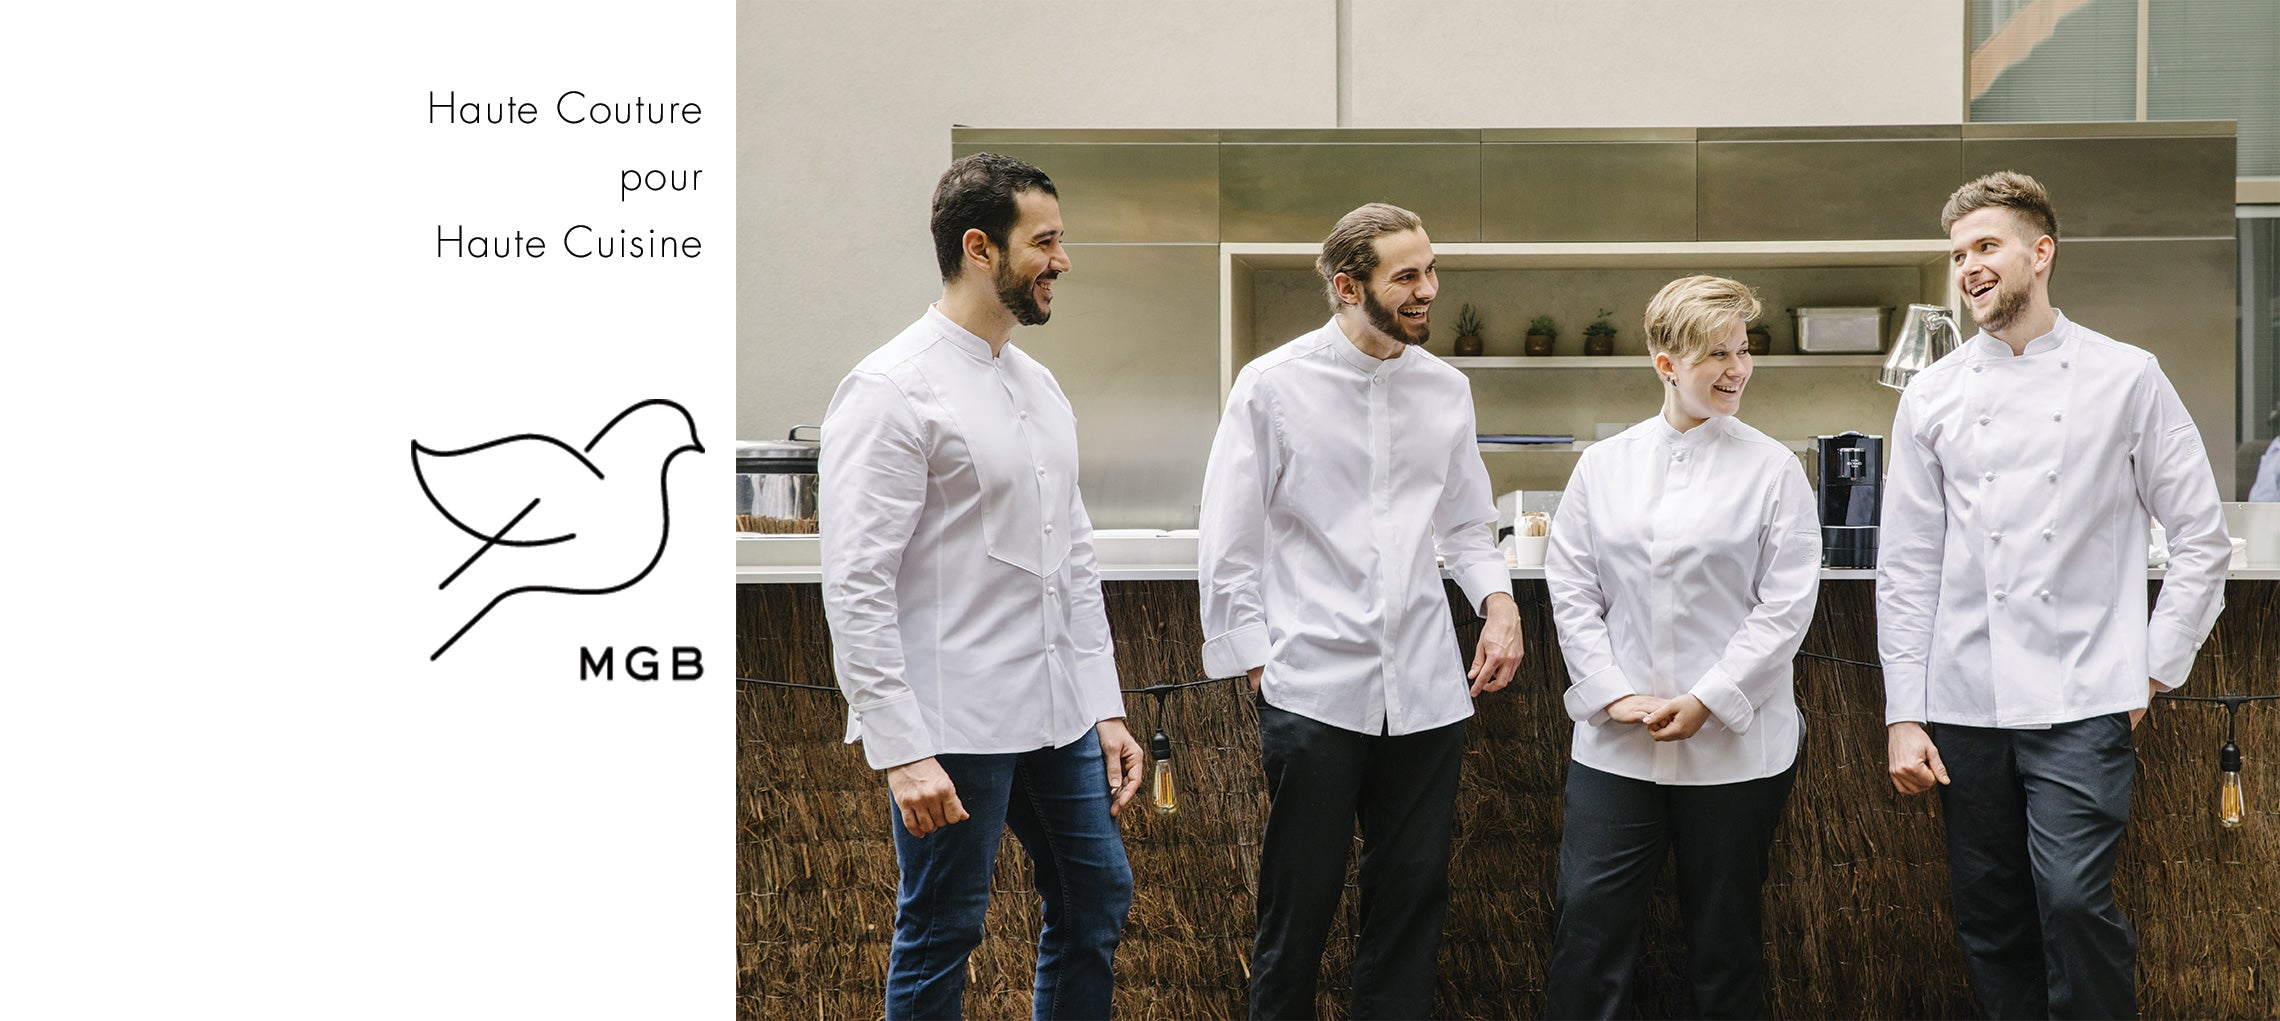 collection de vestes de cuisine MGB